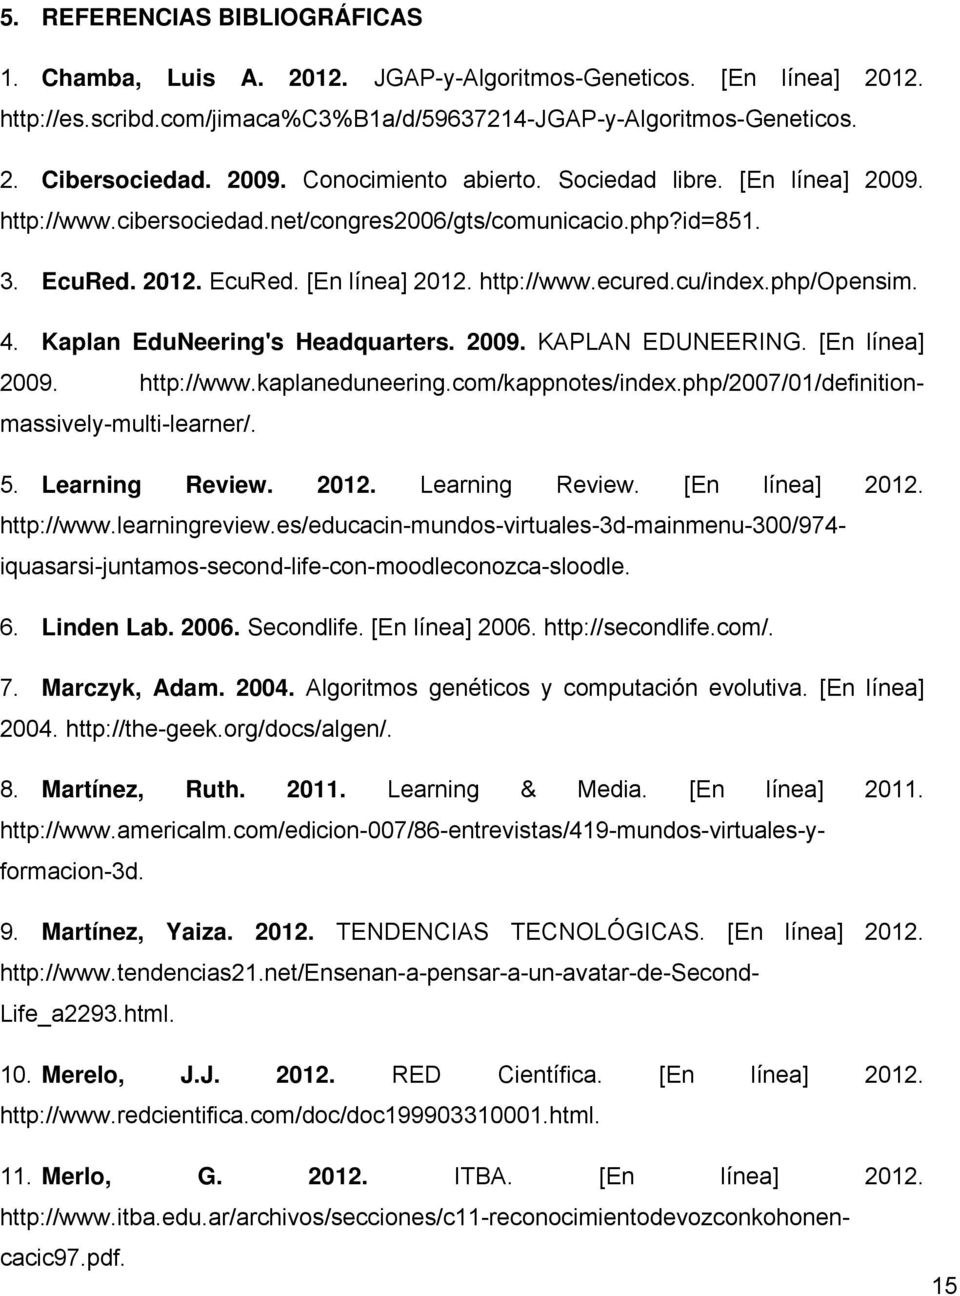 php/opensim. 4. Kaplan EduNeering's Headquarters. 2009. KAPLAN EDUNEERING. [En línea] 2009. http://www.kaplaneduneering.com/kappnotes/index.php/2007/01/definitionmassively-multi-learner/. 5.